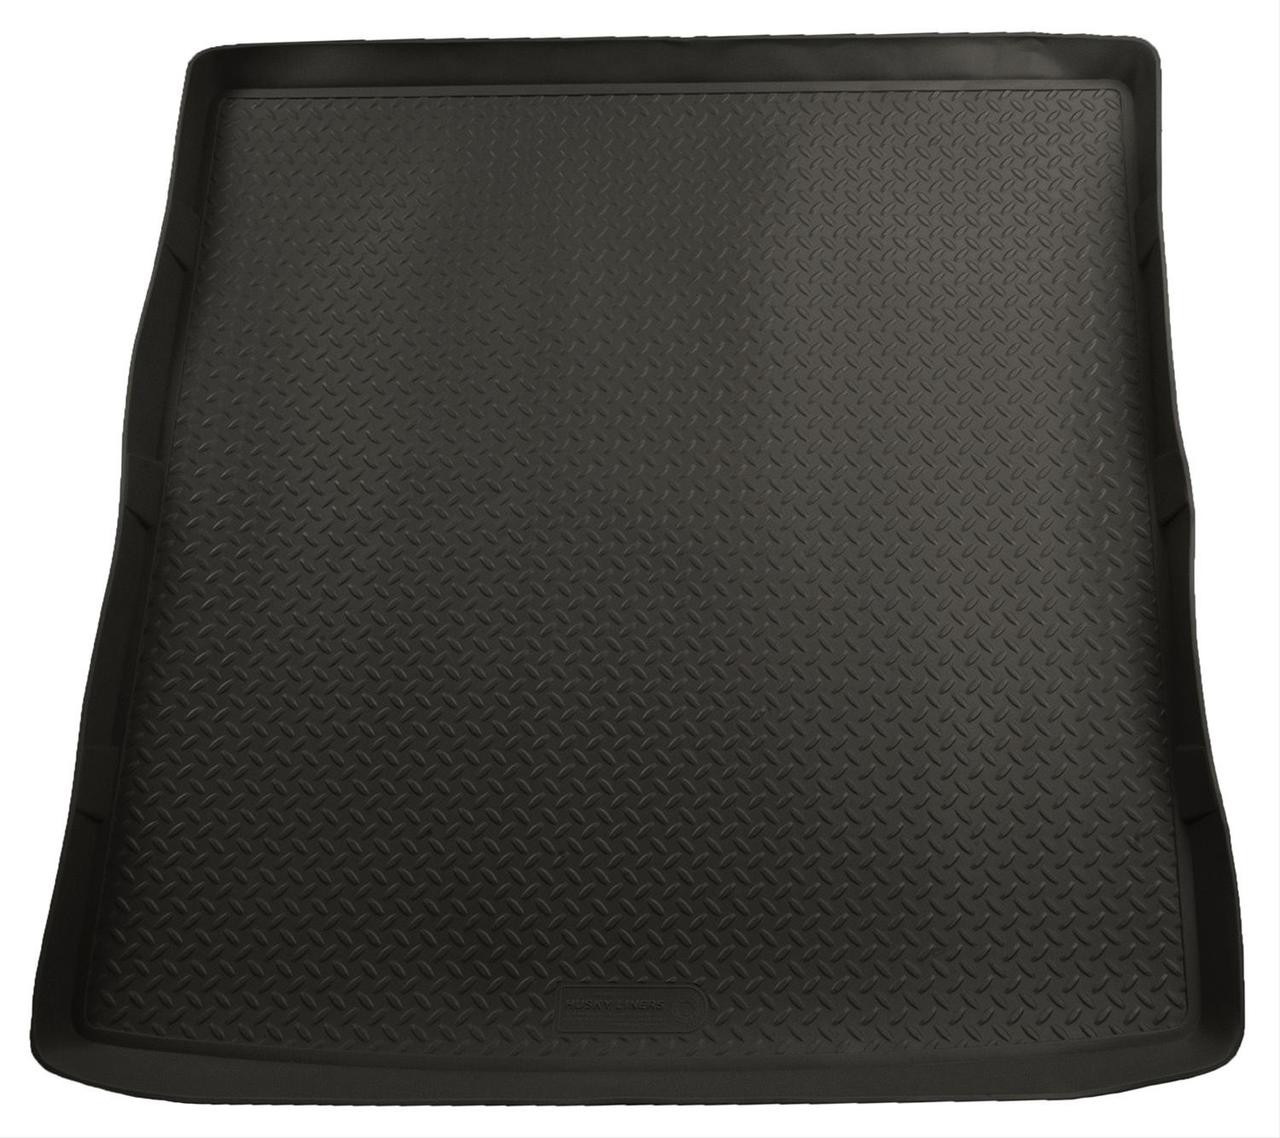 07-16 ACADIA/07-09 OUTLOOK (BEHIND 2ND SEAT - FITS OVER FOLDED FLAT 3RD ROW SEAT) REAR LINER BLACK